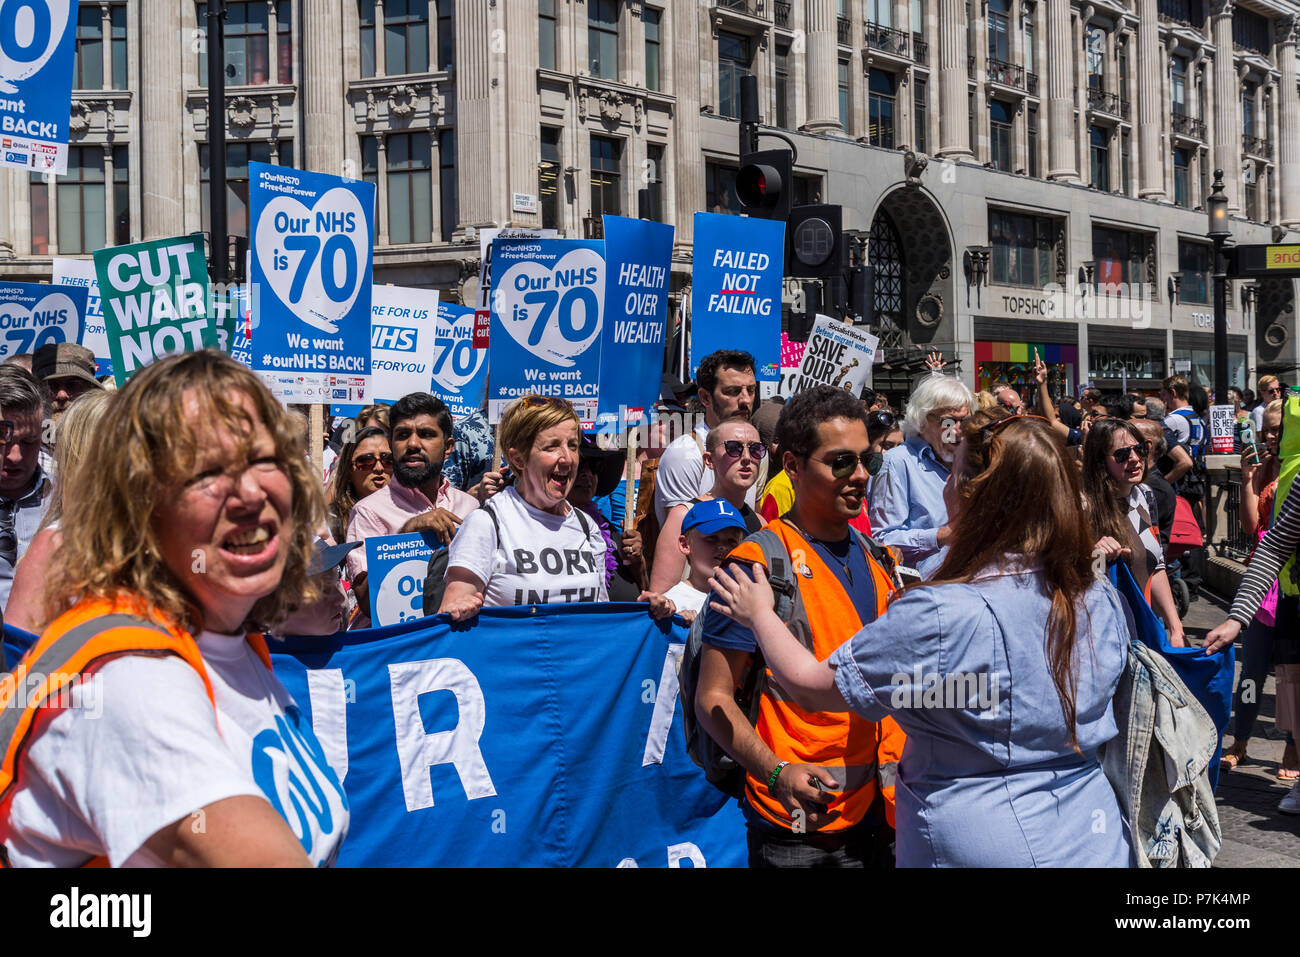 NHS 70th Anniversary March organised by People's Assembly, London, UK, 30/06/2018 - Stock Image